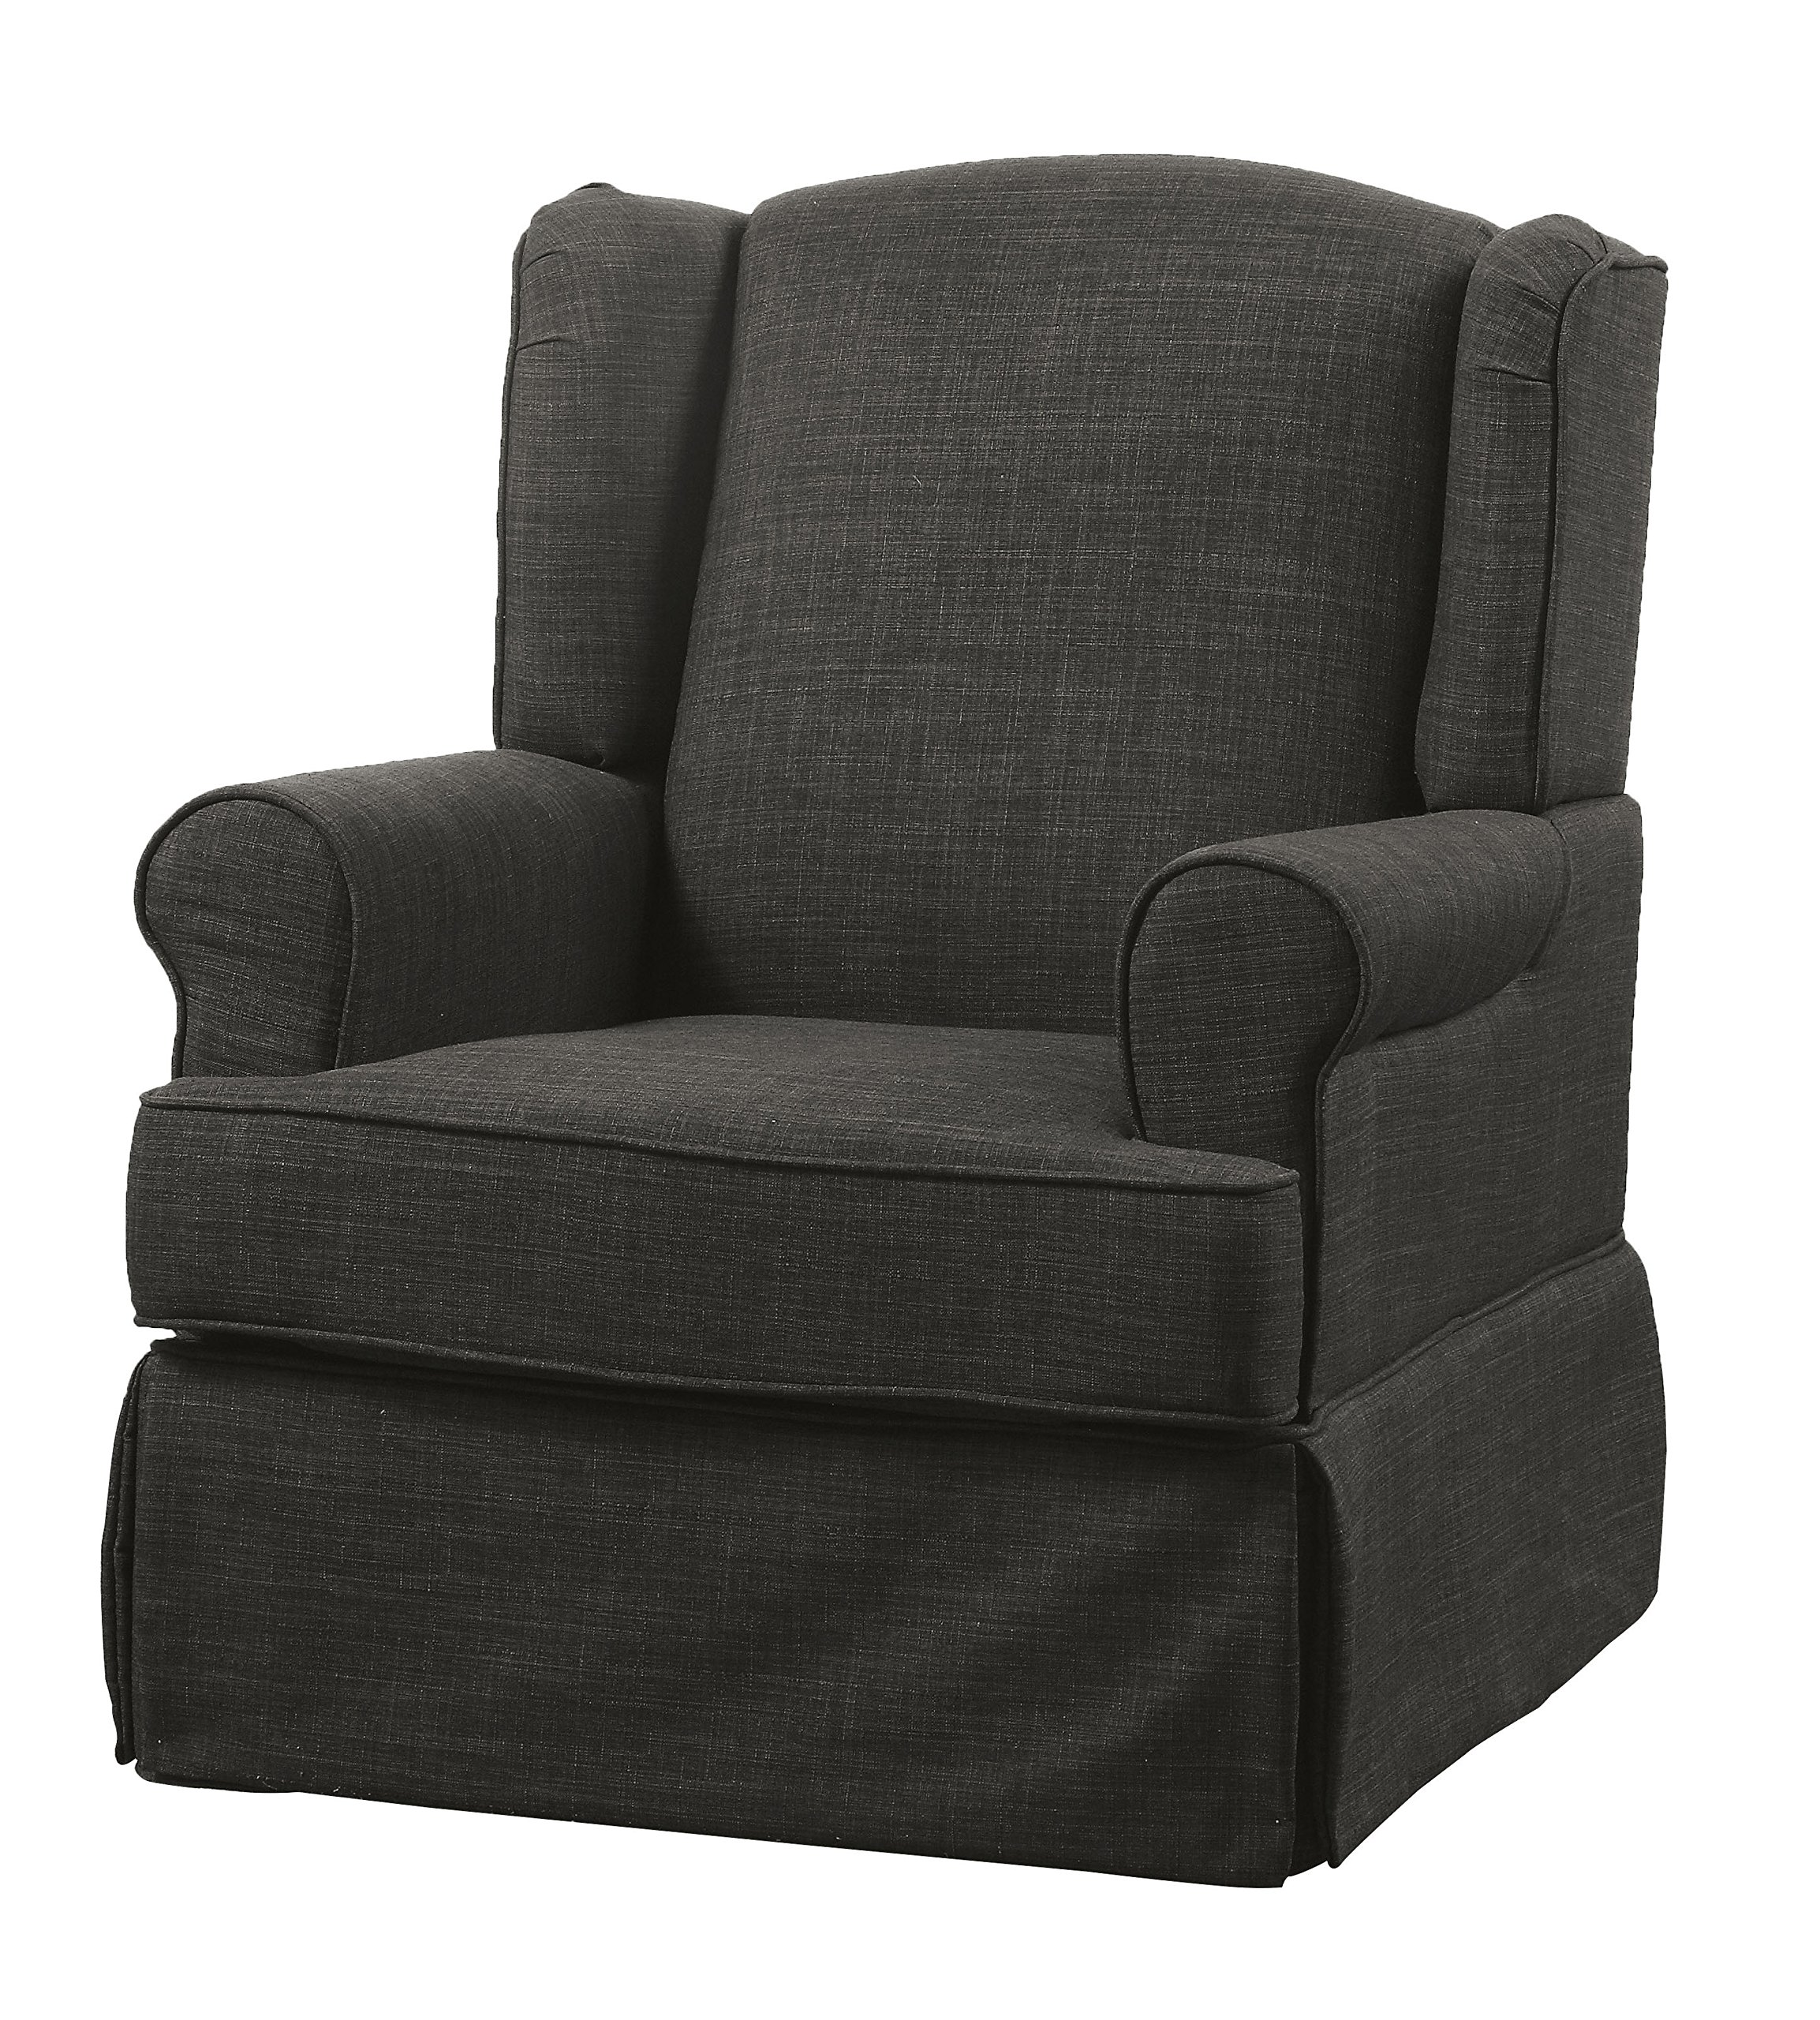 HOMES: Inside + Out IDF-RC6508DG Imogen Transitional 360 Glider and Rocker Chair, Dark Grey